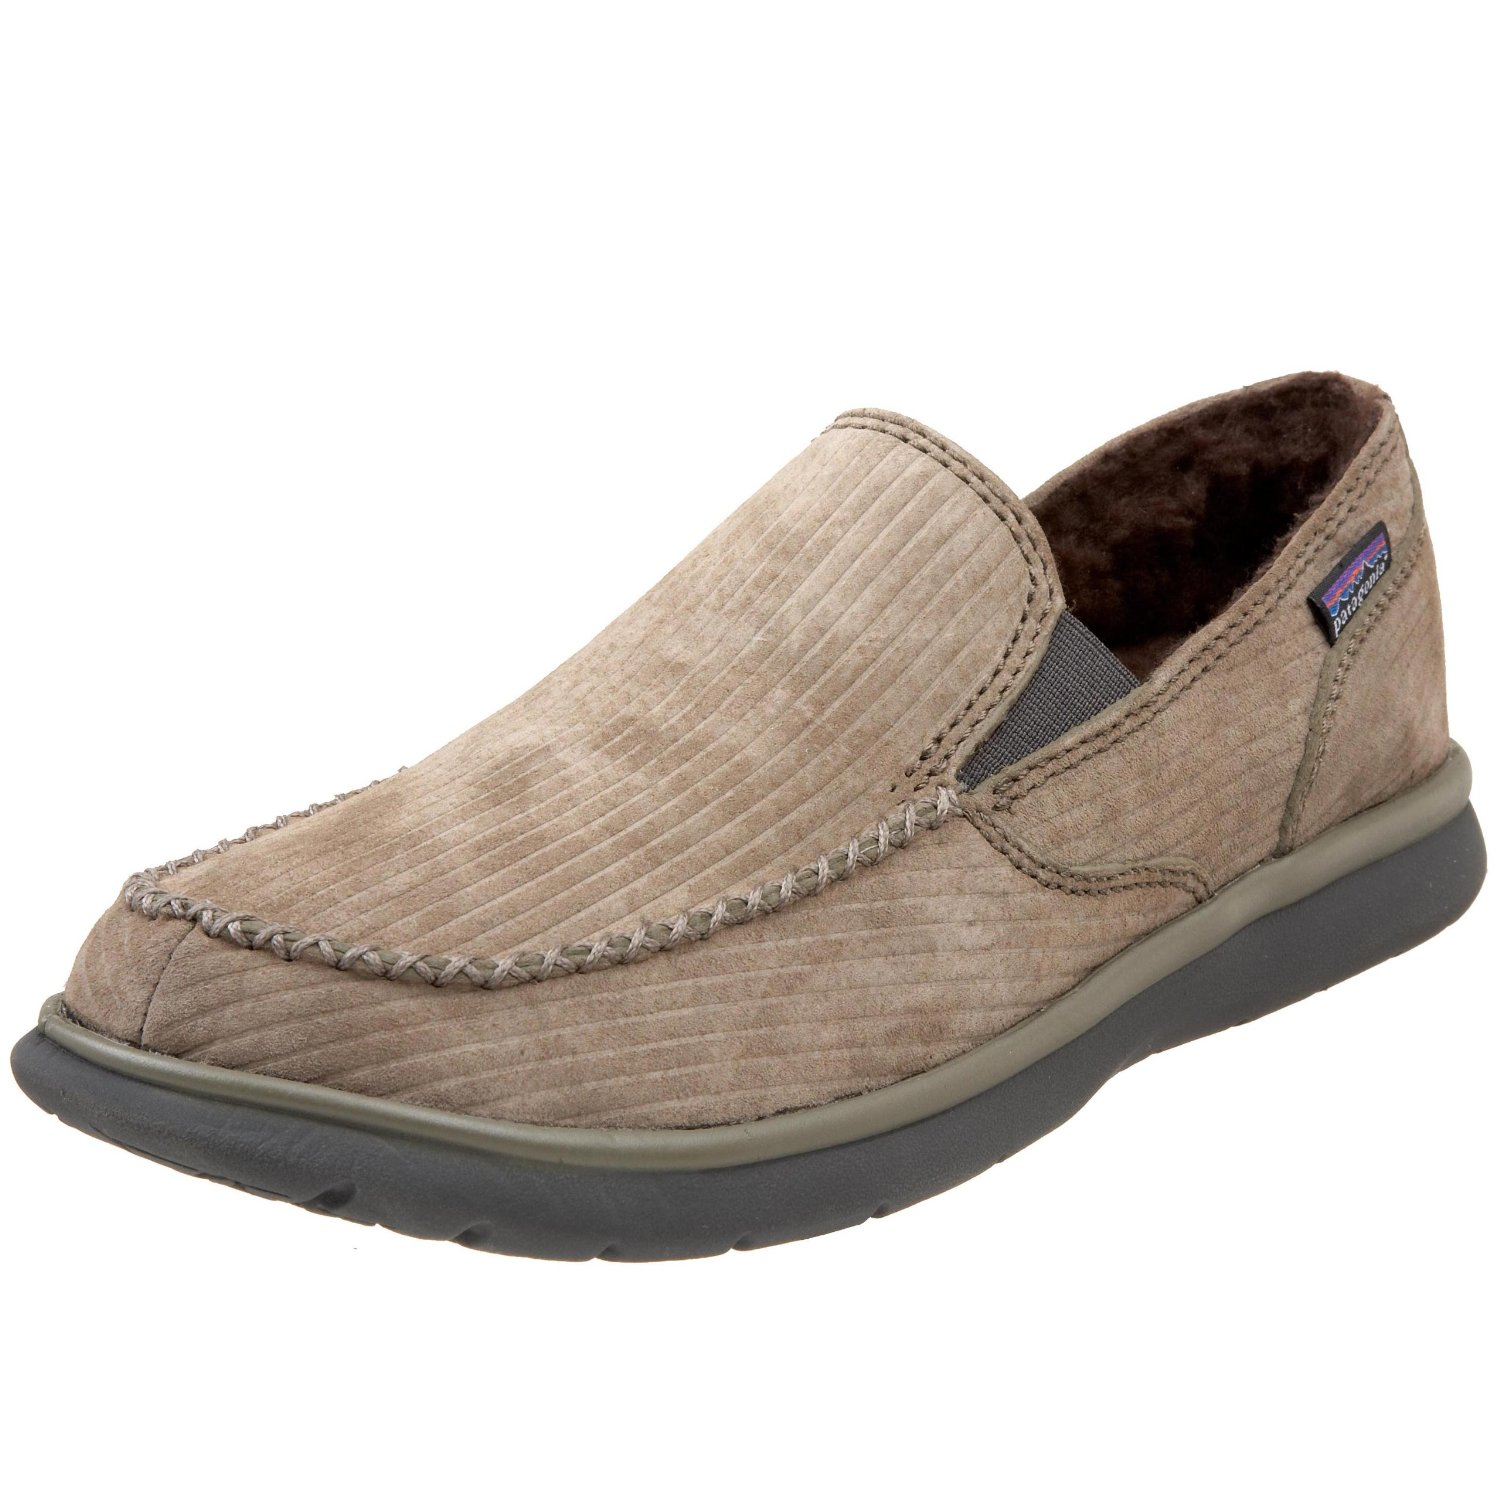 patagonia mens moc fleece lined shoe in beige for